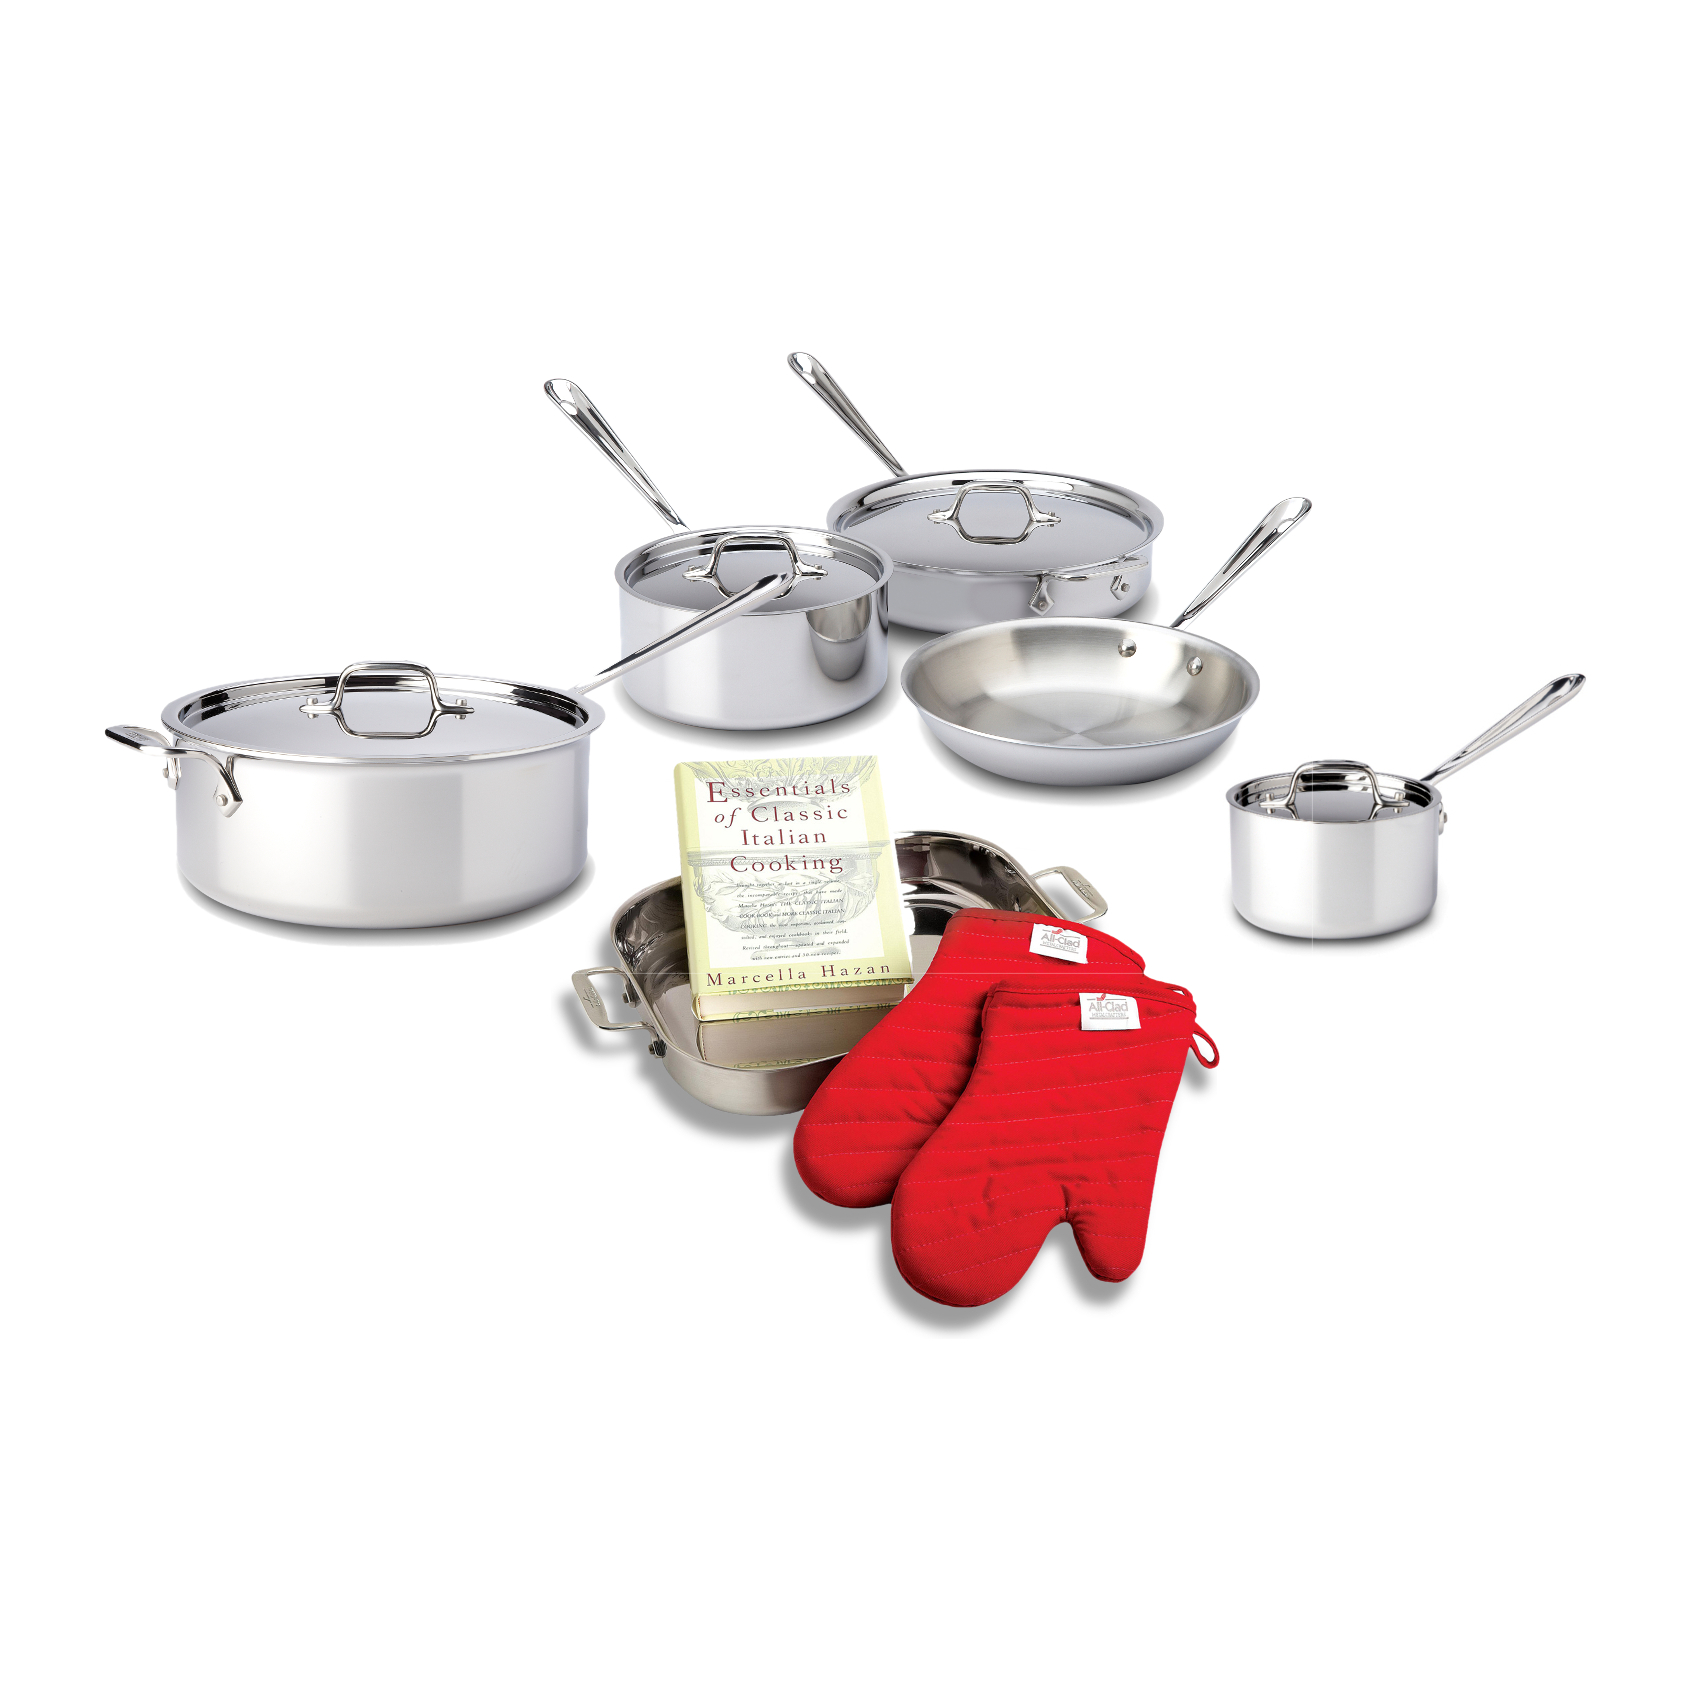 All-Clad 18/10 Stainless Steel 10 Piece Cookware Set with Cookbook and Oven Mitts